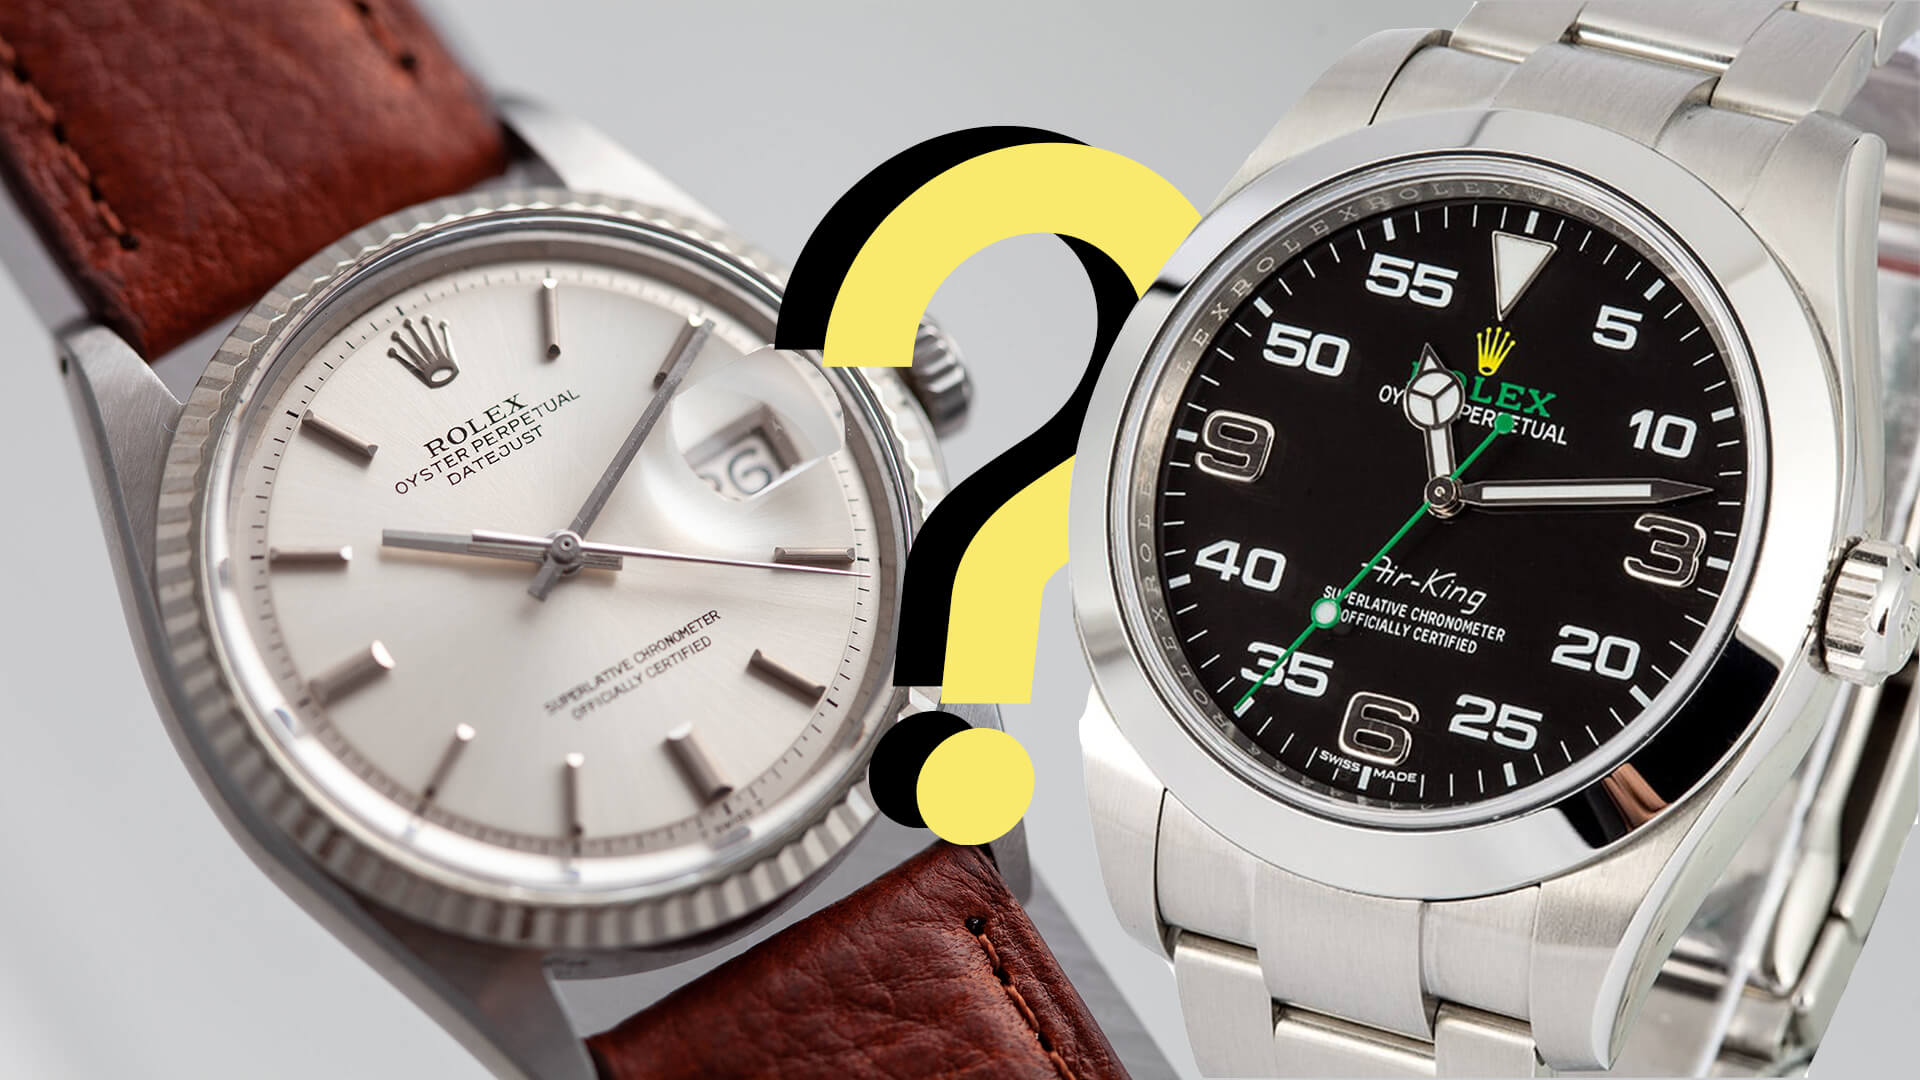 Watch 101: Which Entry-Level Rolex is Best